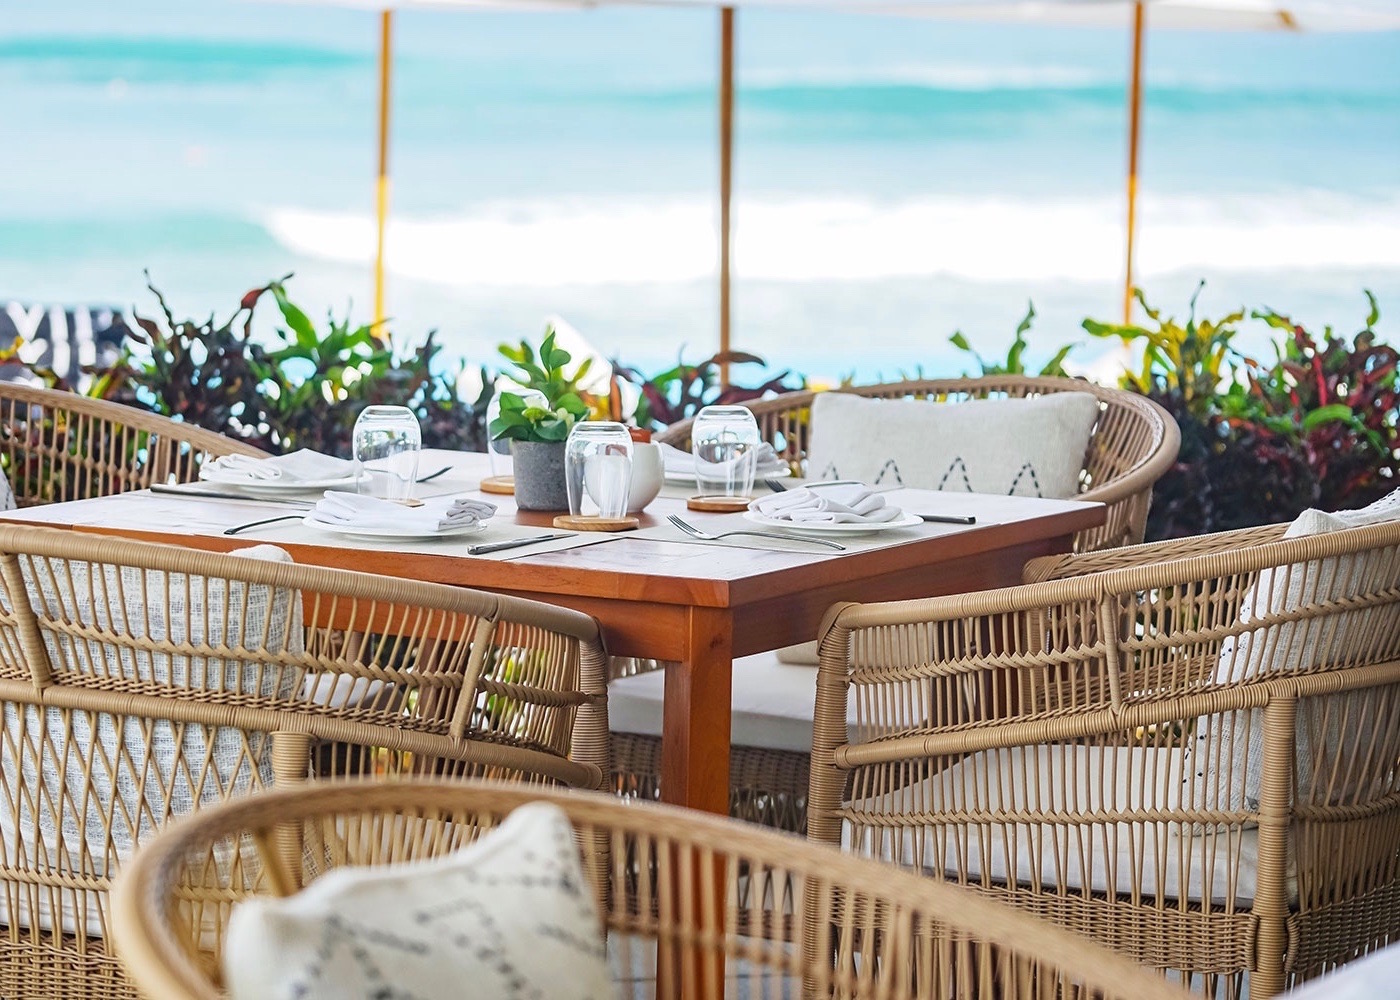 St Tropez Beachfront Restaurant at Finns VIP Beach Club in Berawa, Canggu, Bali - Indonesia